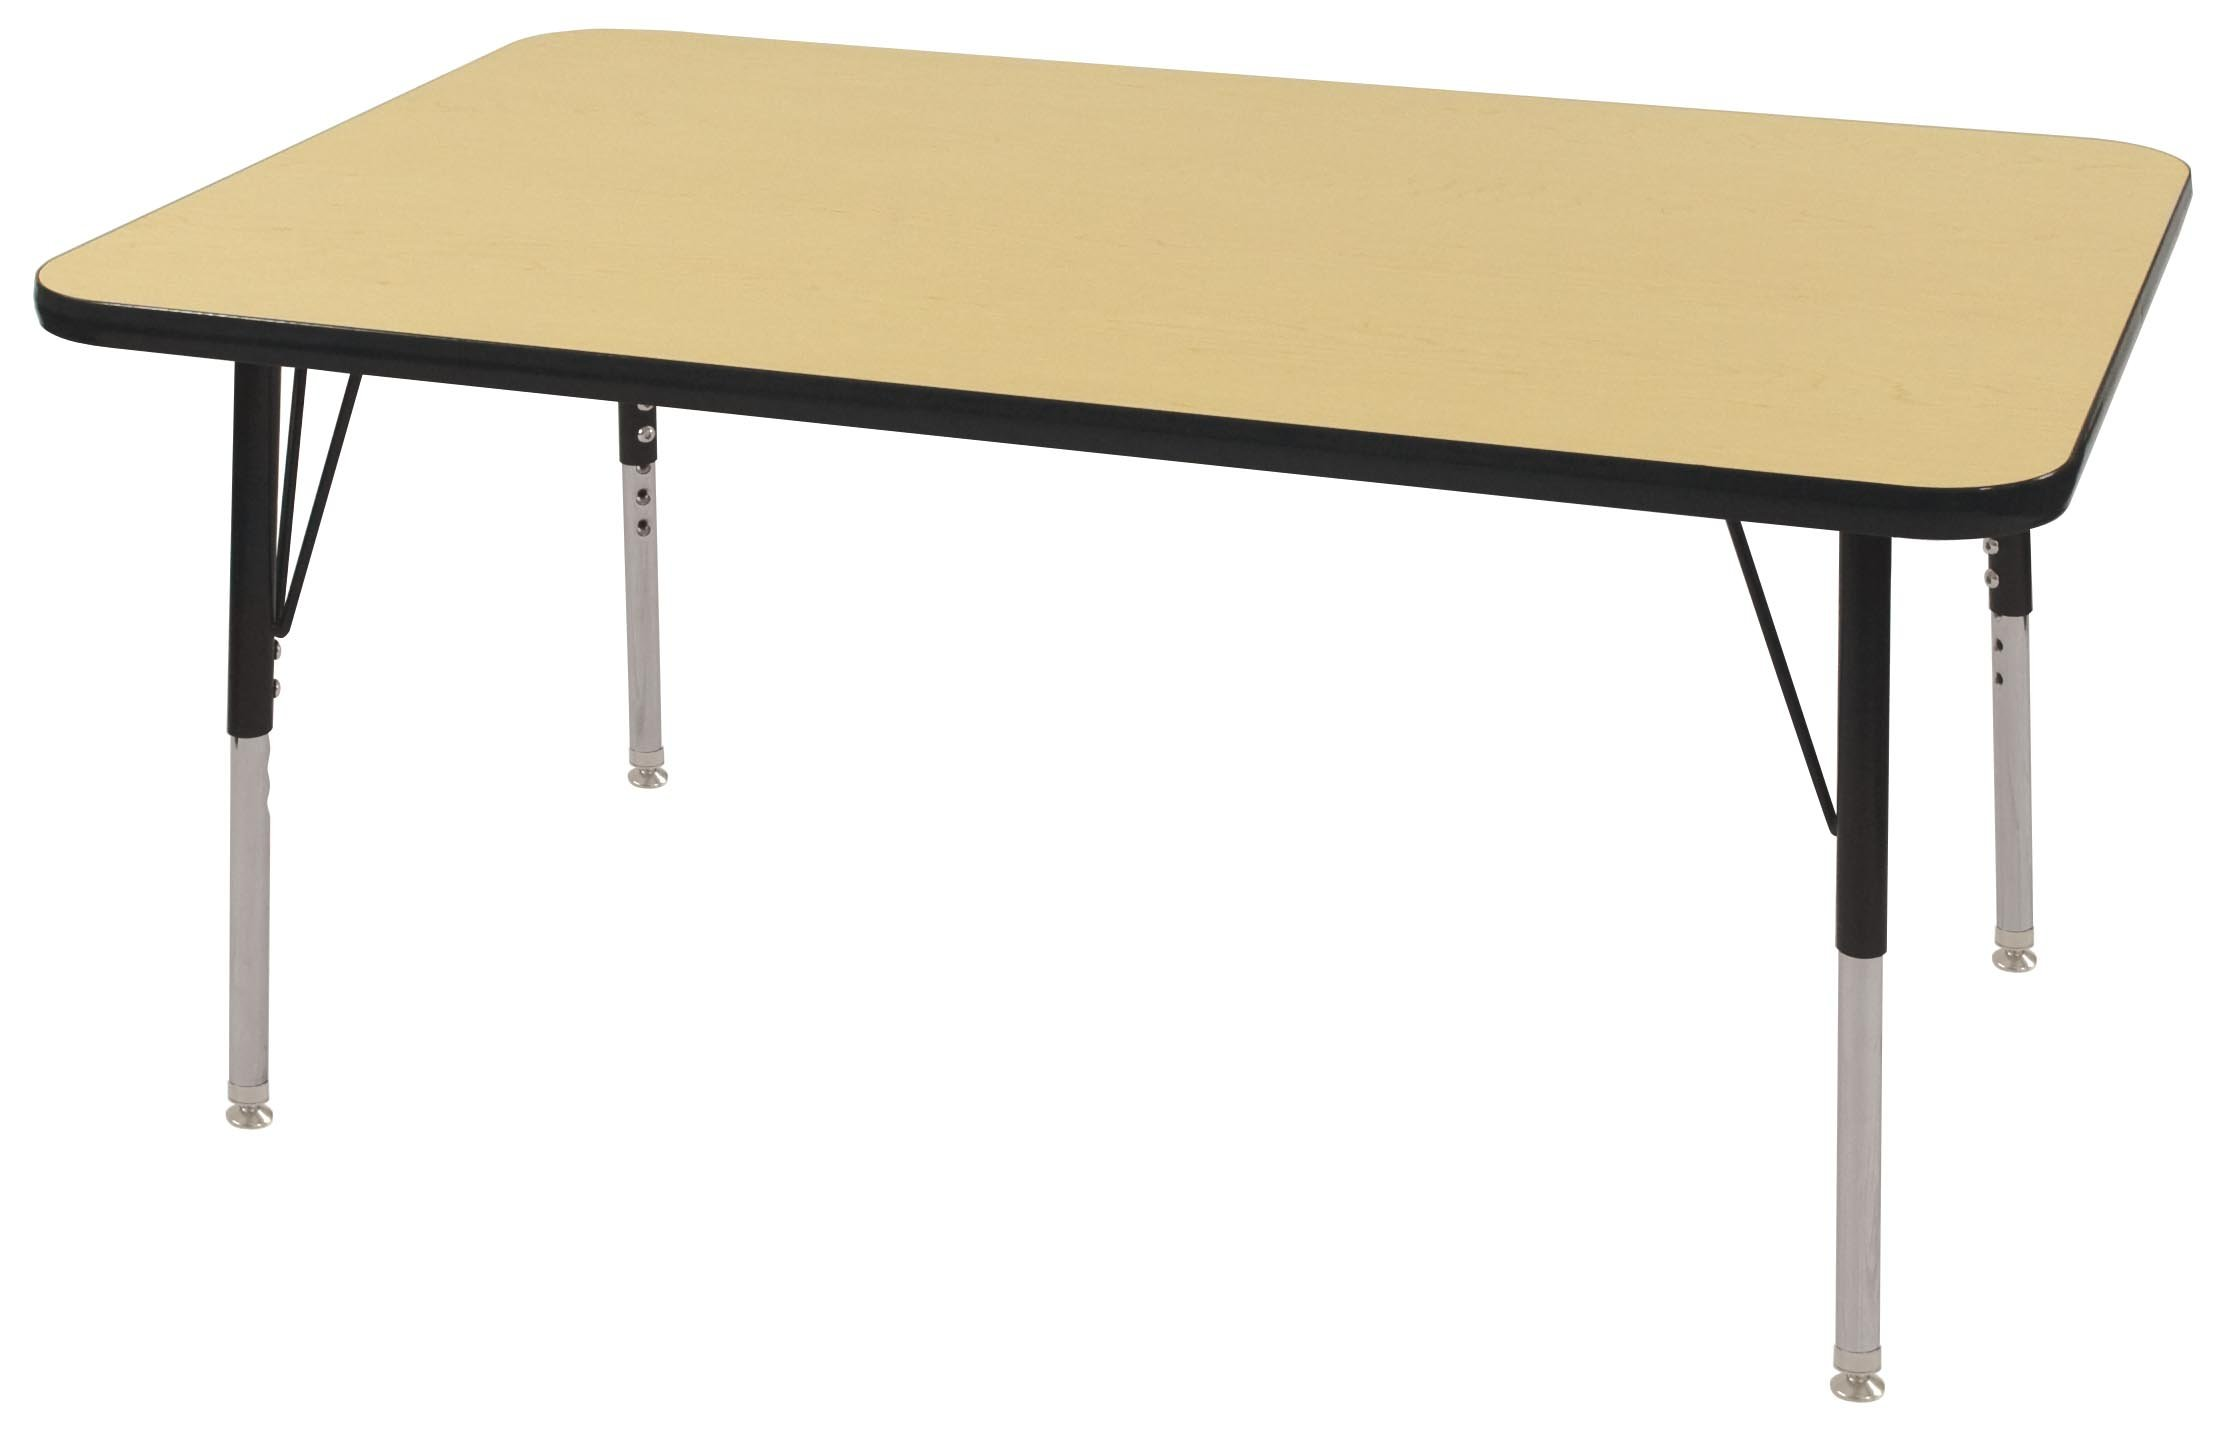 ECR4Kids T-Mold 30'' x 48'' Rectangular Activity School Table, Standard Legs w/ Swivel Glides, Adjustable Height 19-30 inch (Maple/Black) by ECR4Kids